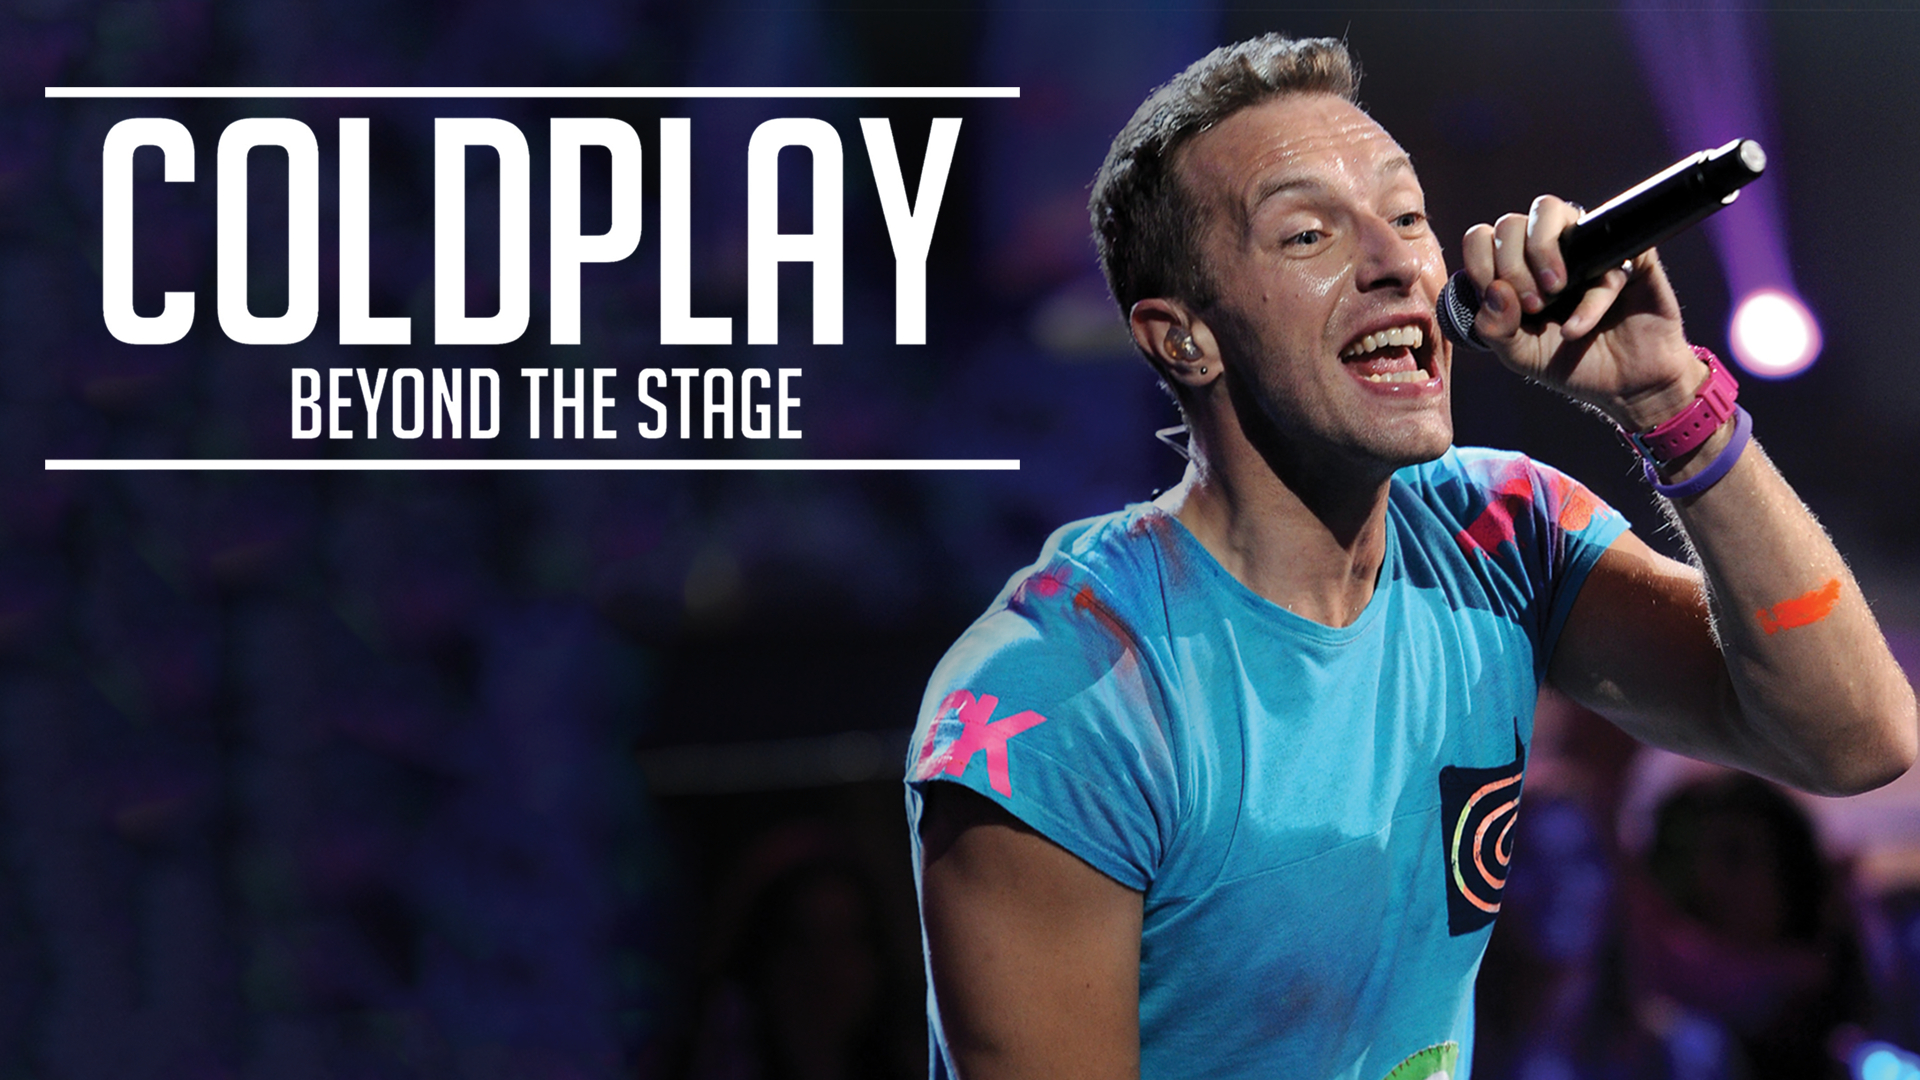 Coldplay: Behind the Stage